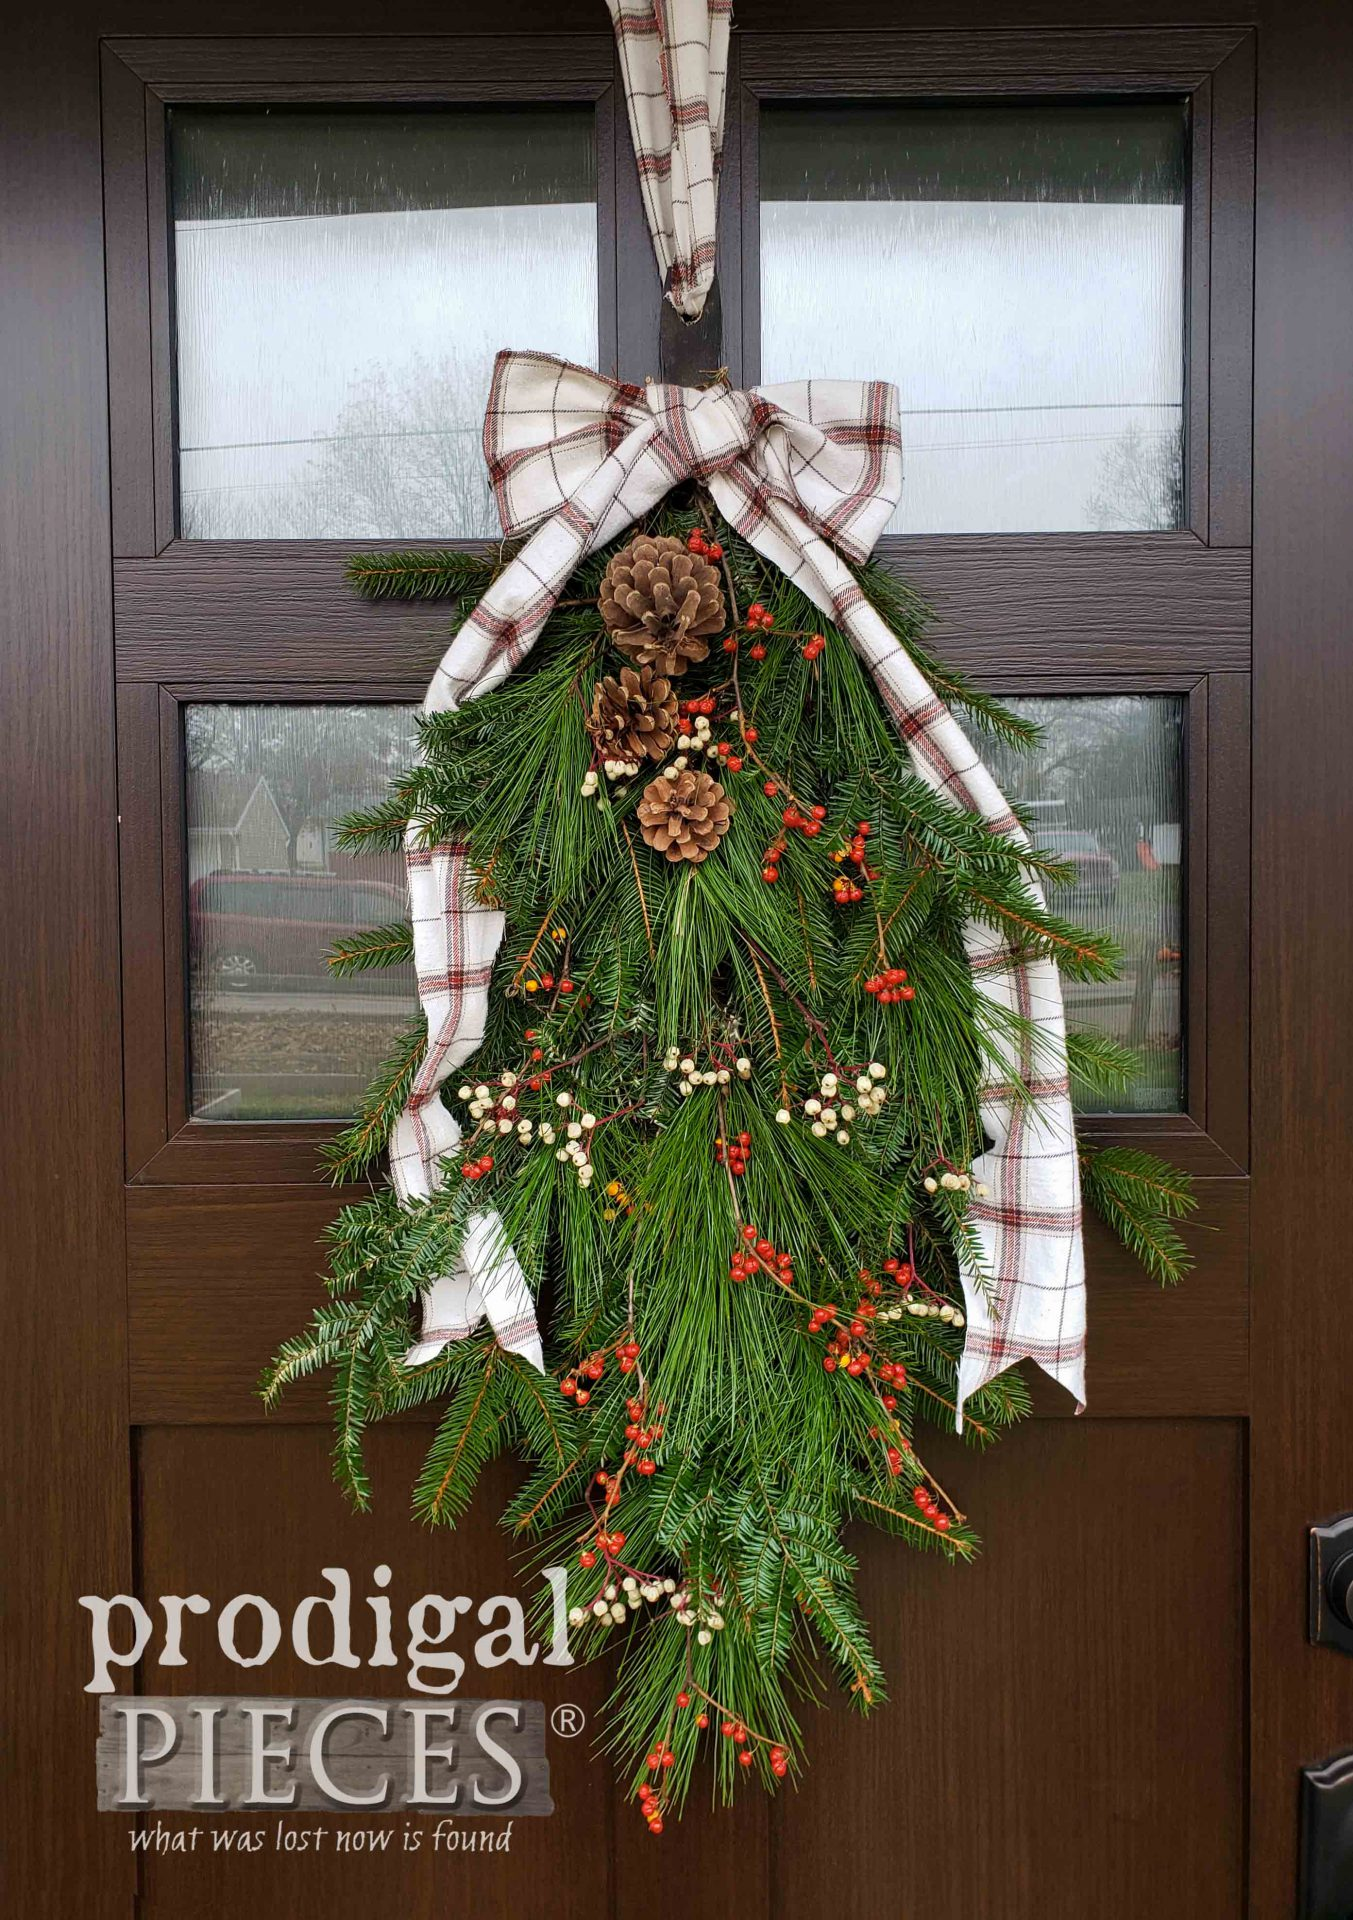 Rustic DIY Christmas Swag from Fresh Foraged Greens | Video Tutorial by Larissa of Prodigal Pieces | prodigalpieces.com #prodigalpieces #christmas #nordic #farmhouse #home #holiday #homedecor